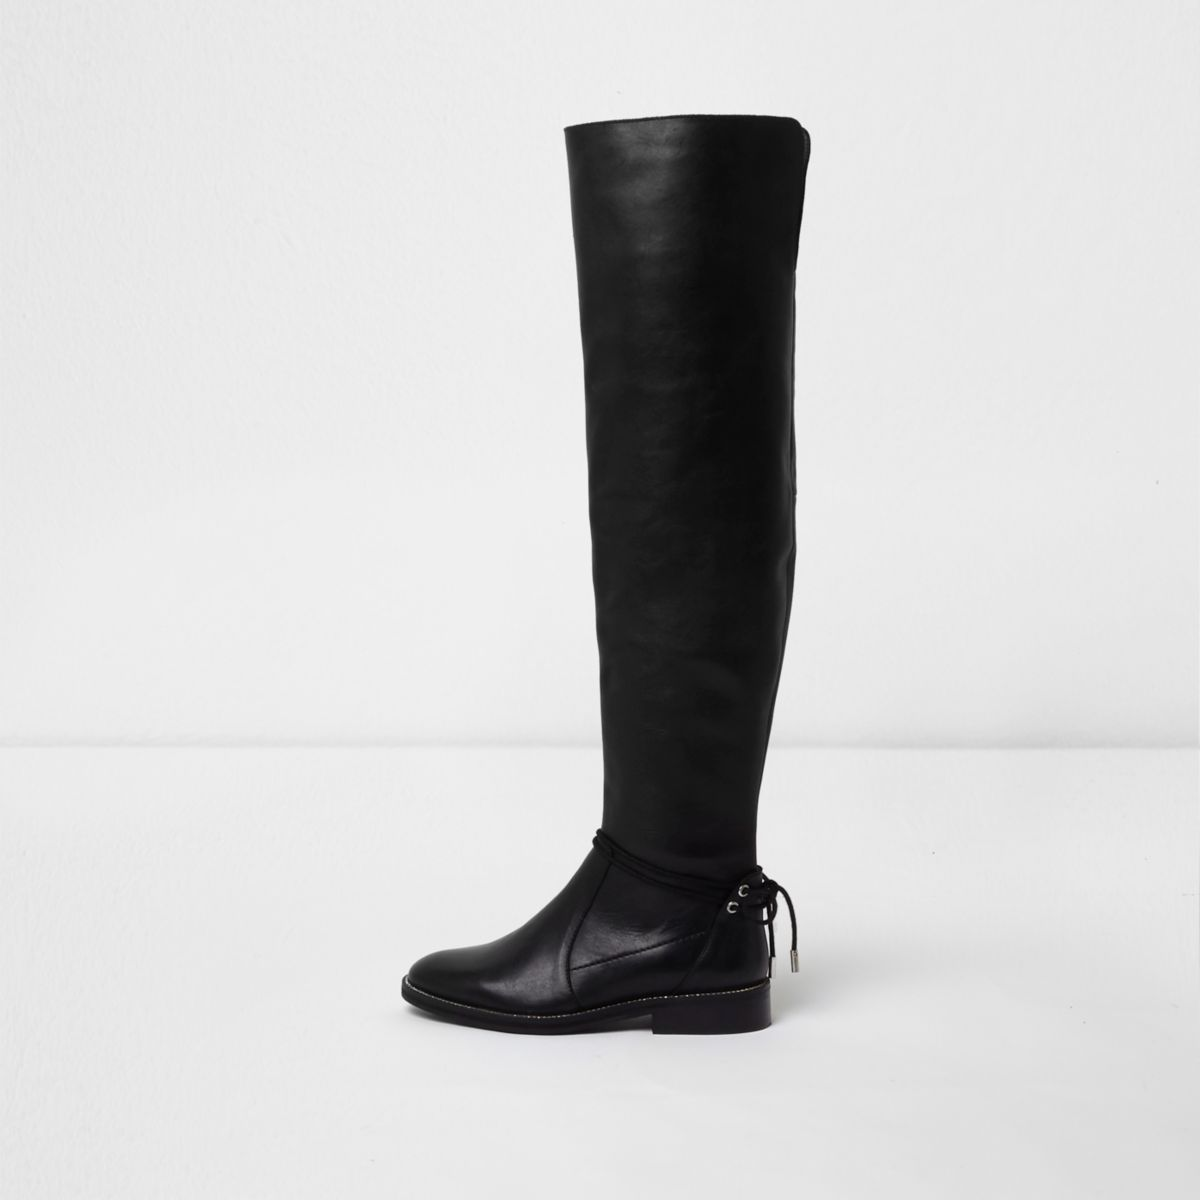 Black leather over the knee flat boots